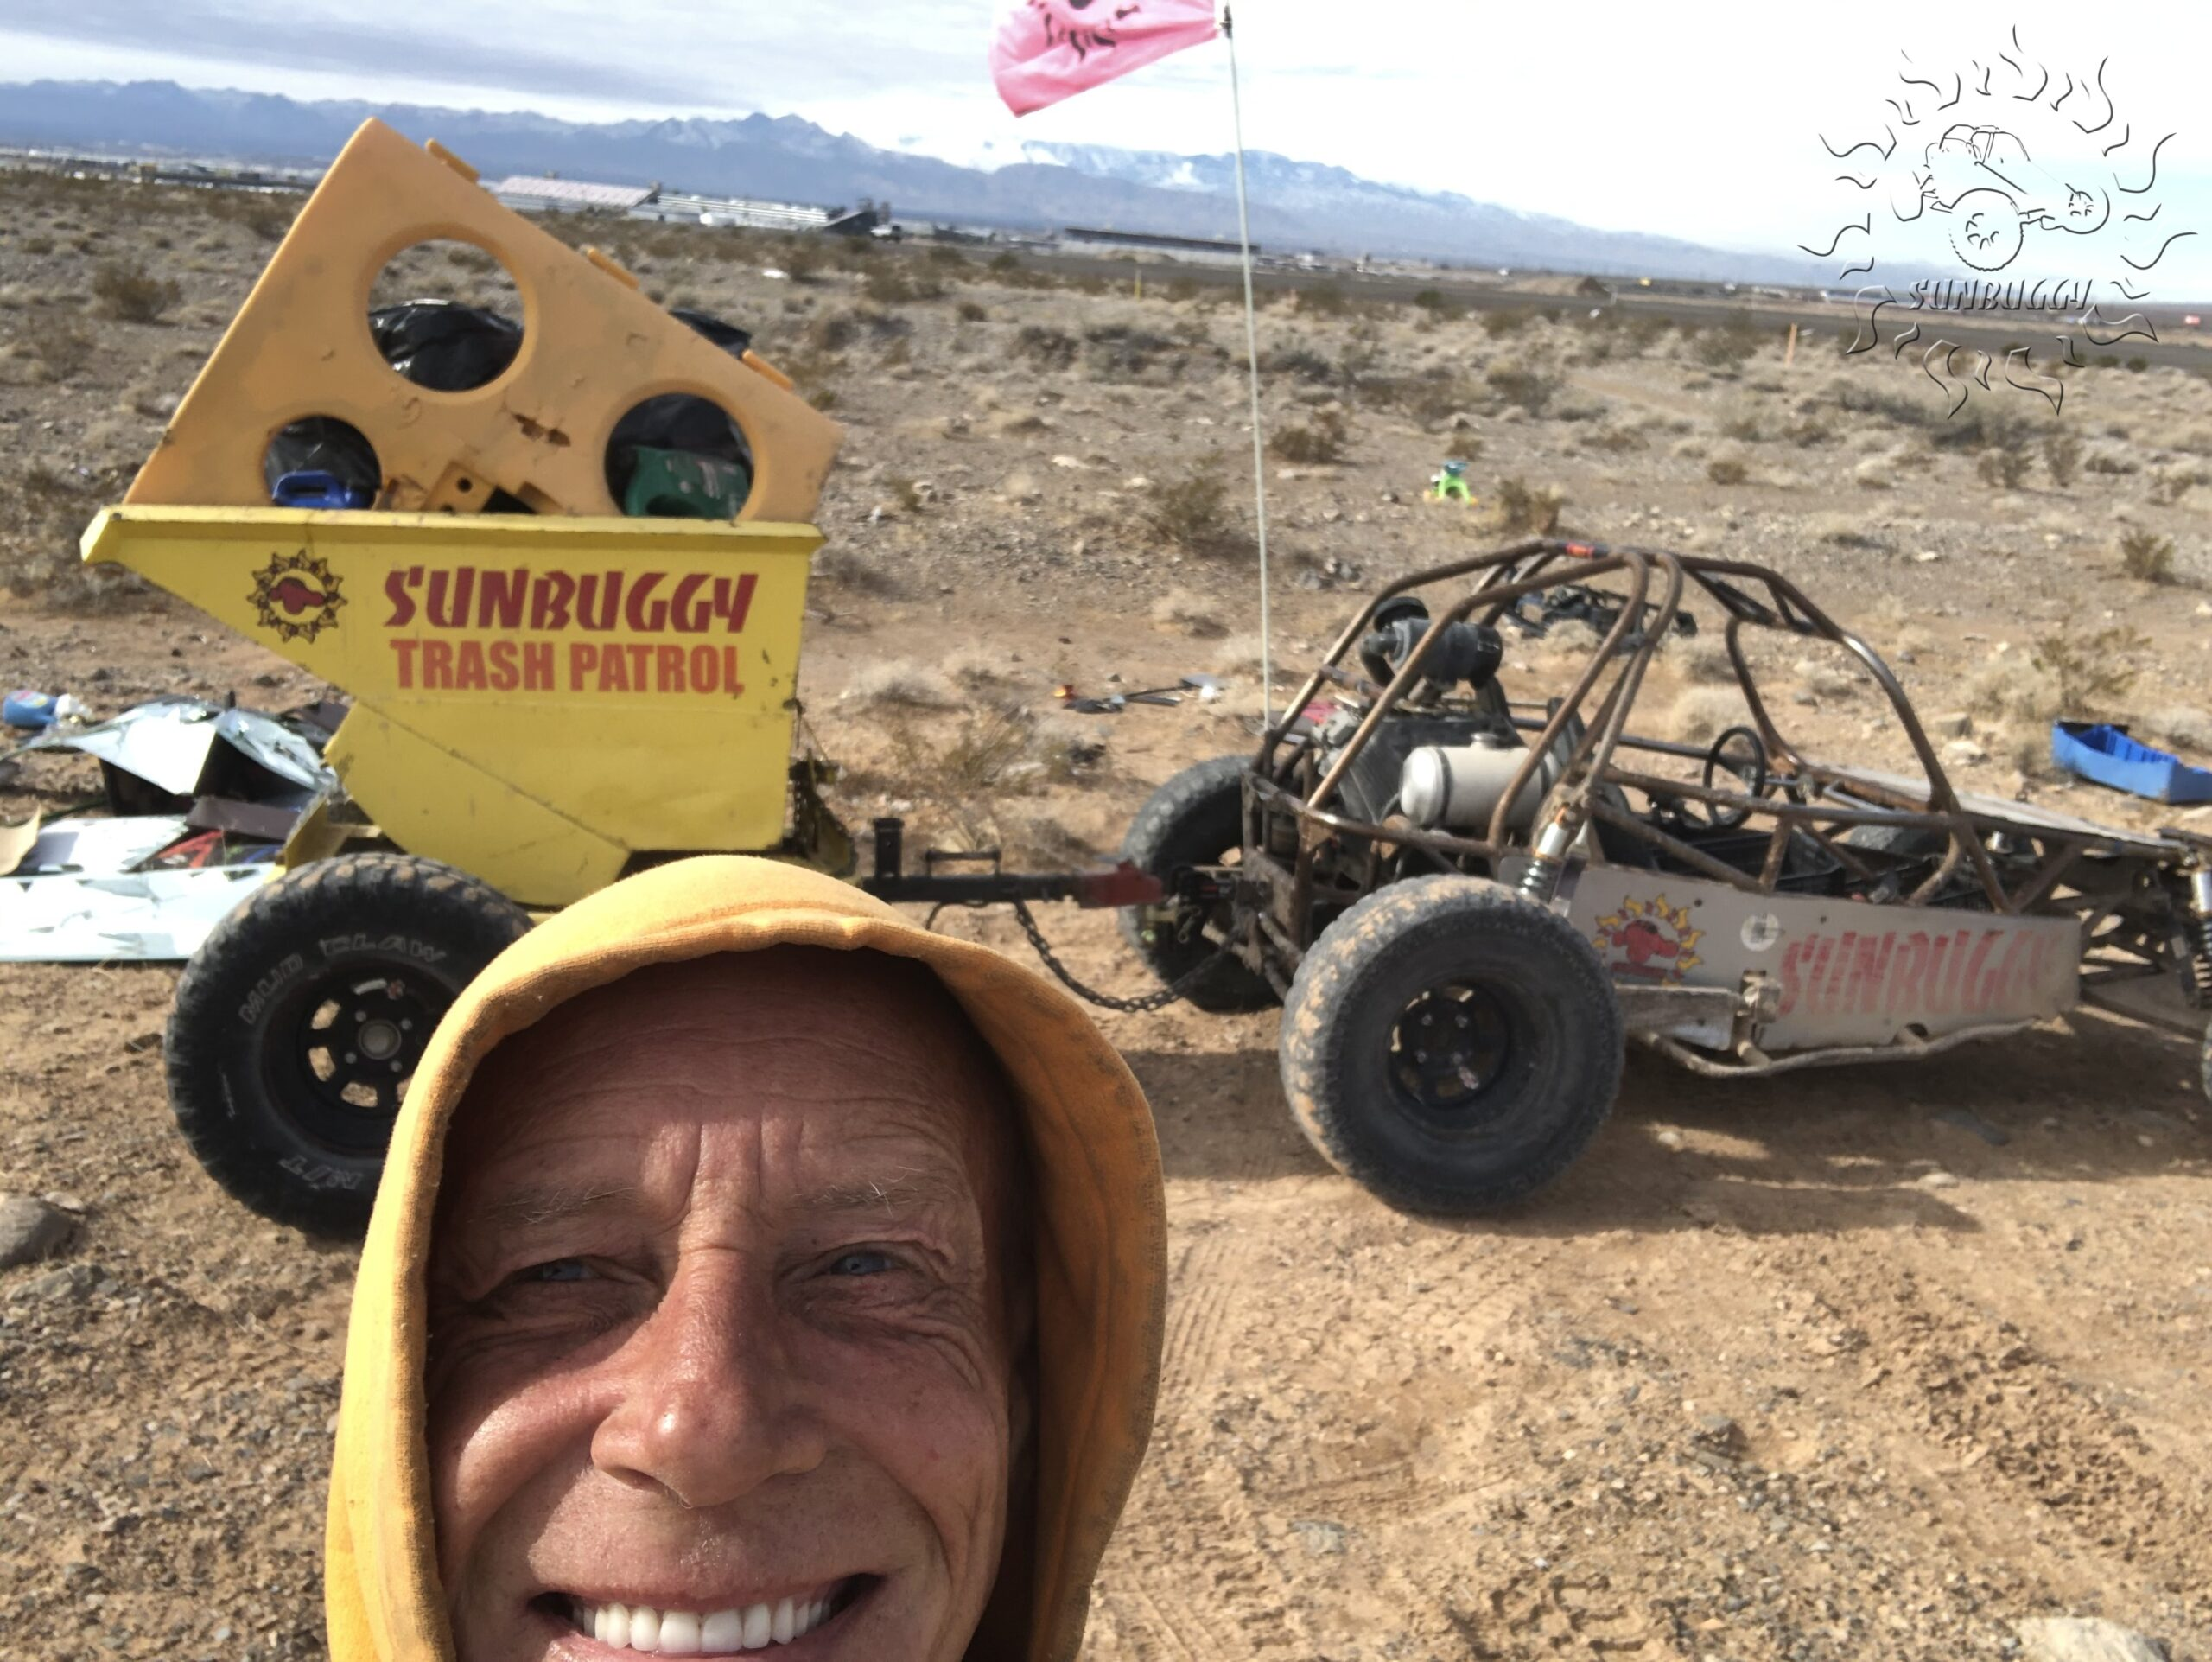 Sunbuggy Fun Rentals Trash Patrol